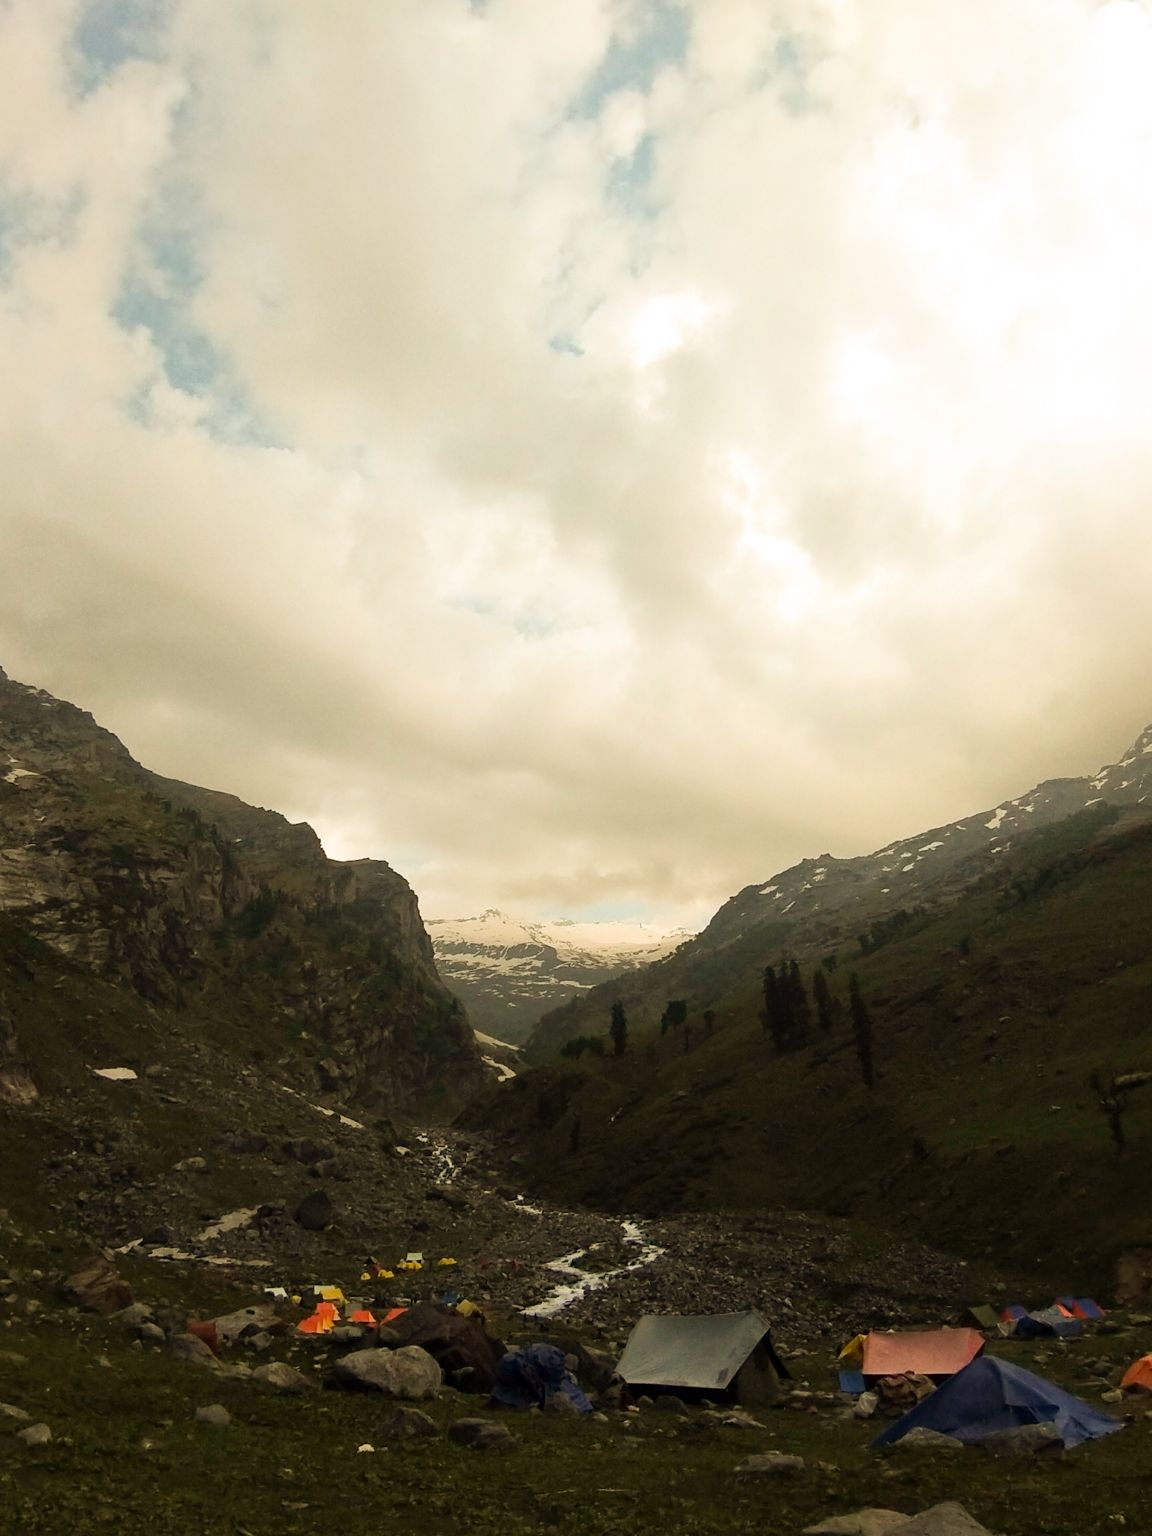 Photo of Hampta Pass Trek Camp Himalayan Mountain Sojourns By mohit aakarsh